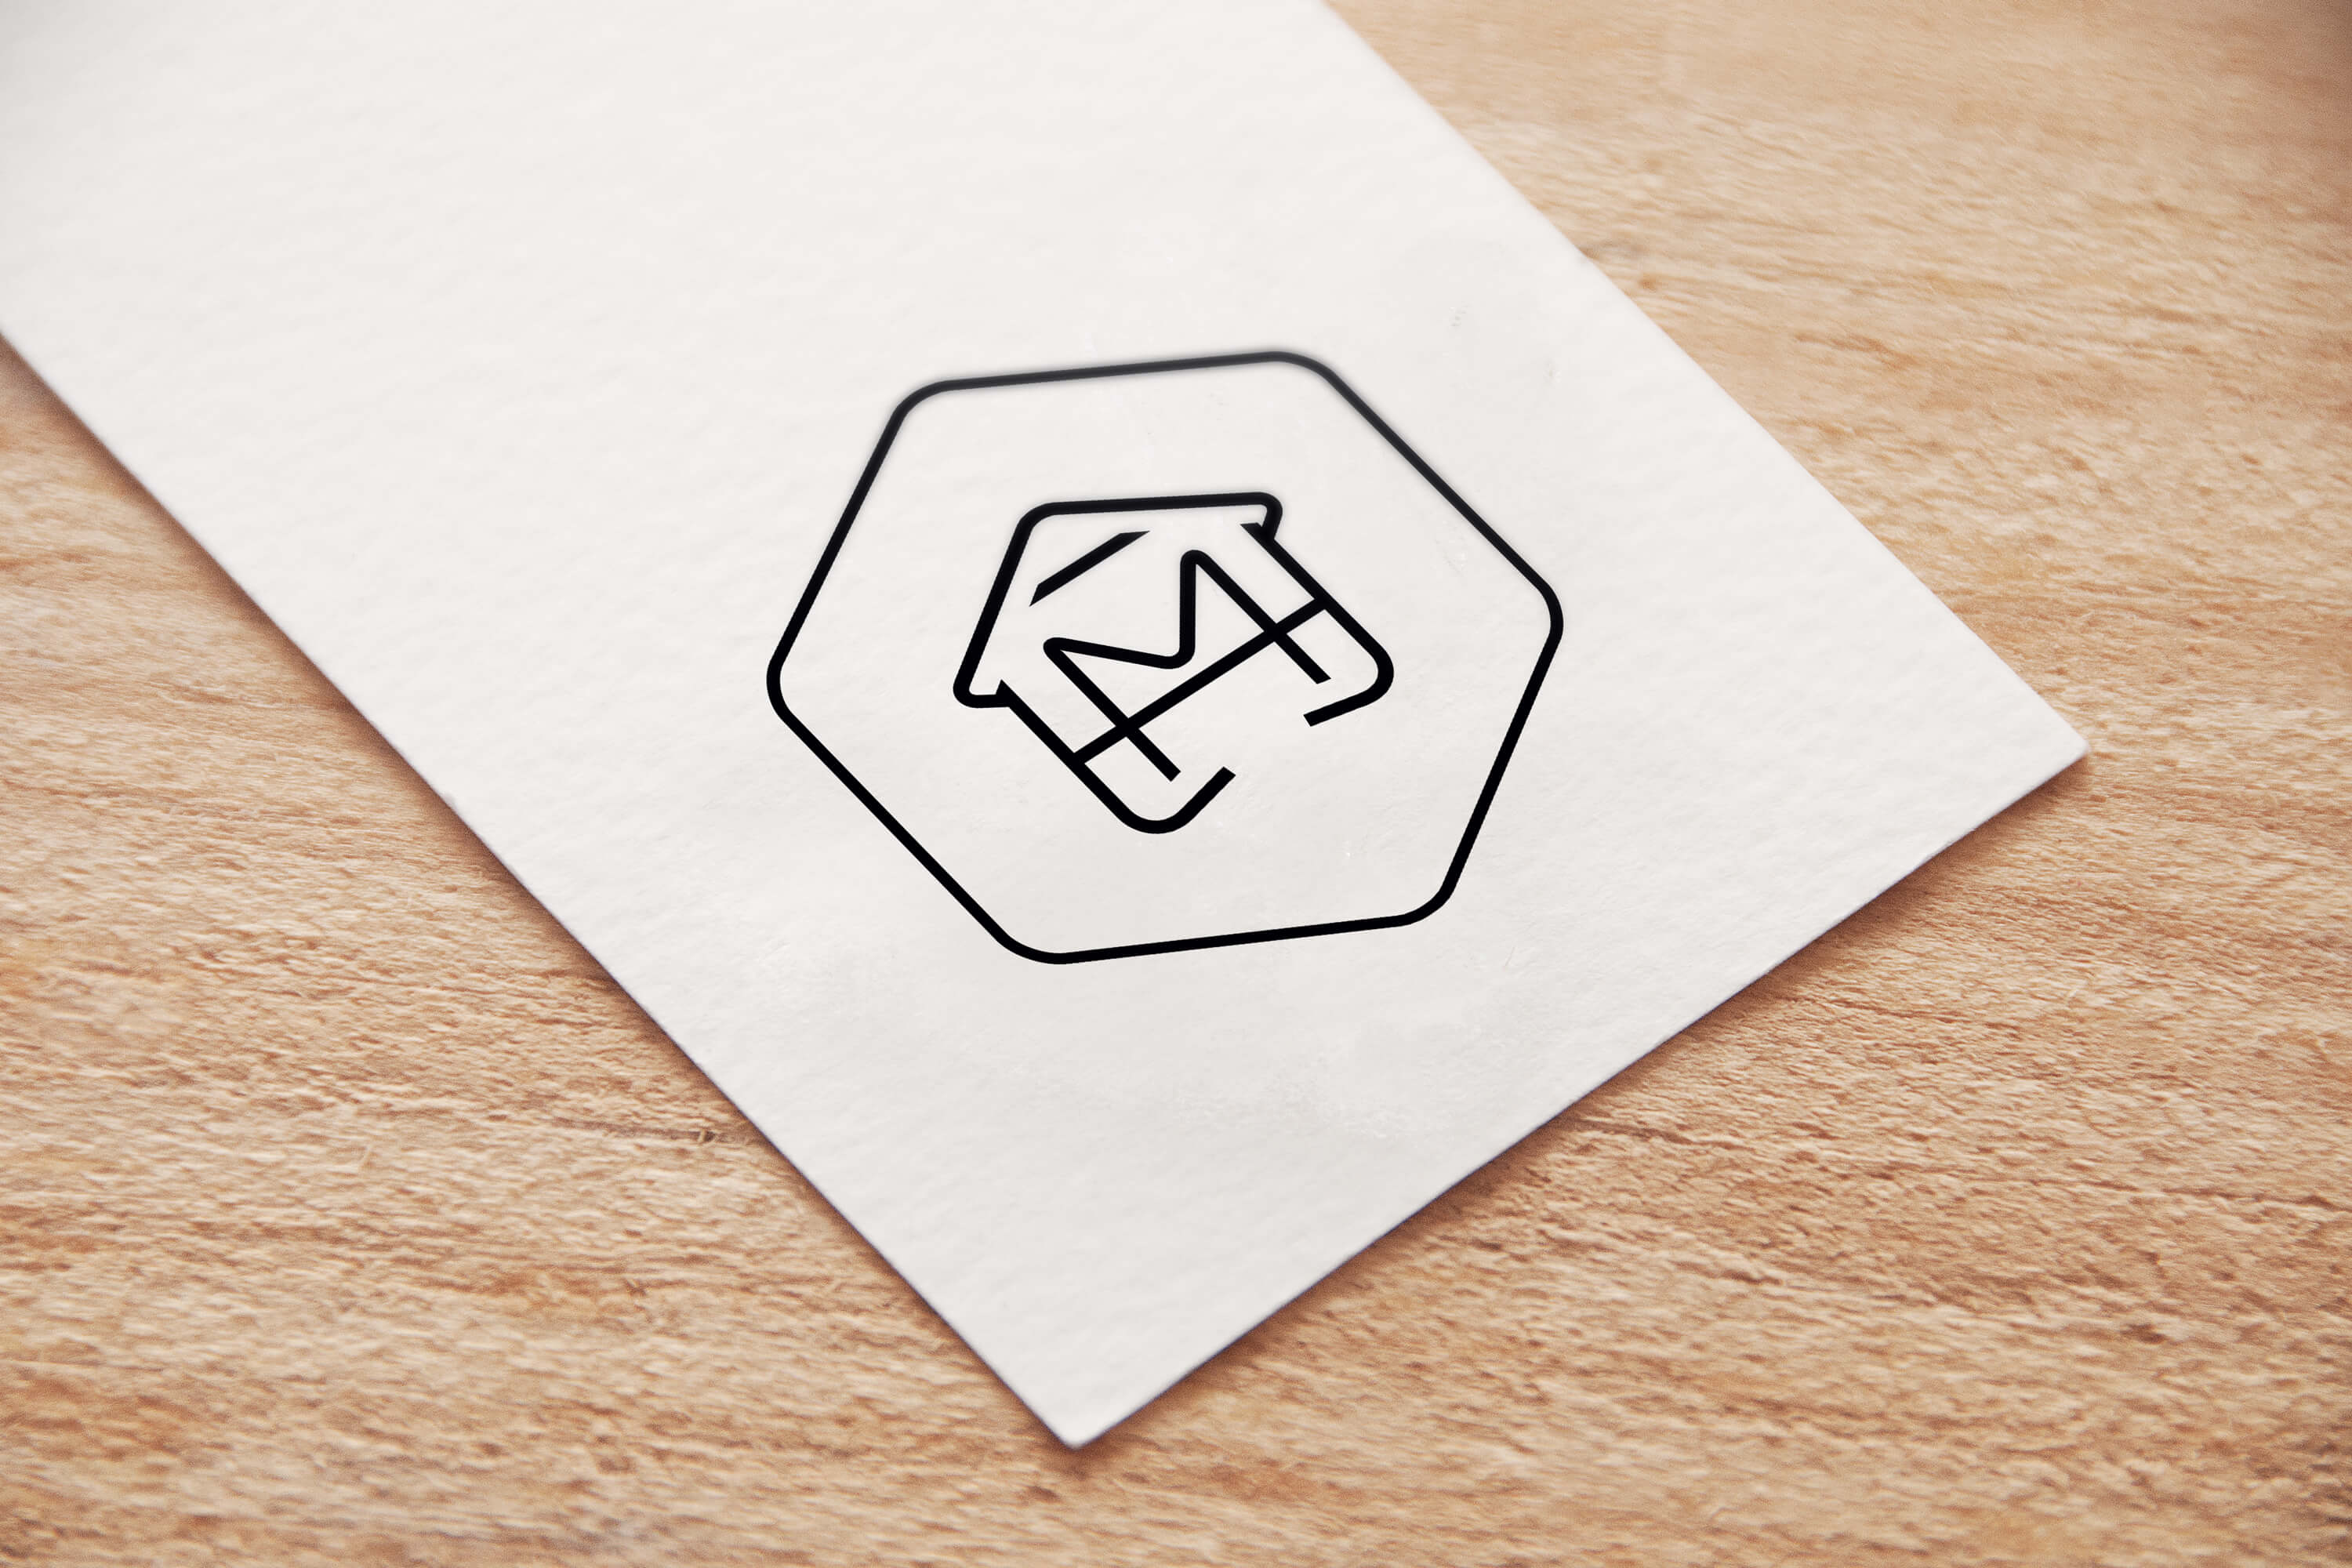 Close up a printed paper tag showing a variation of the Make My House Home logo